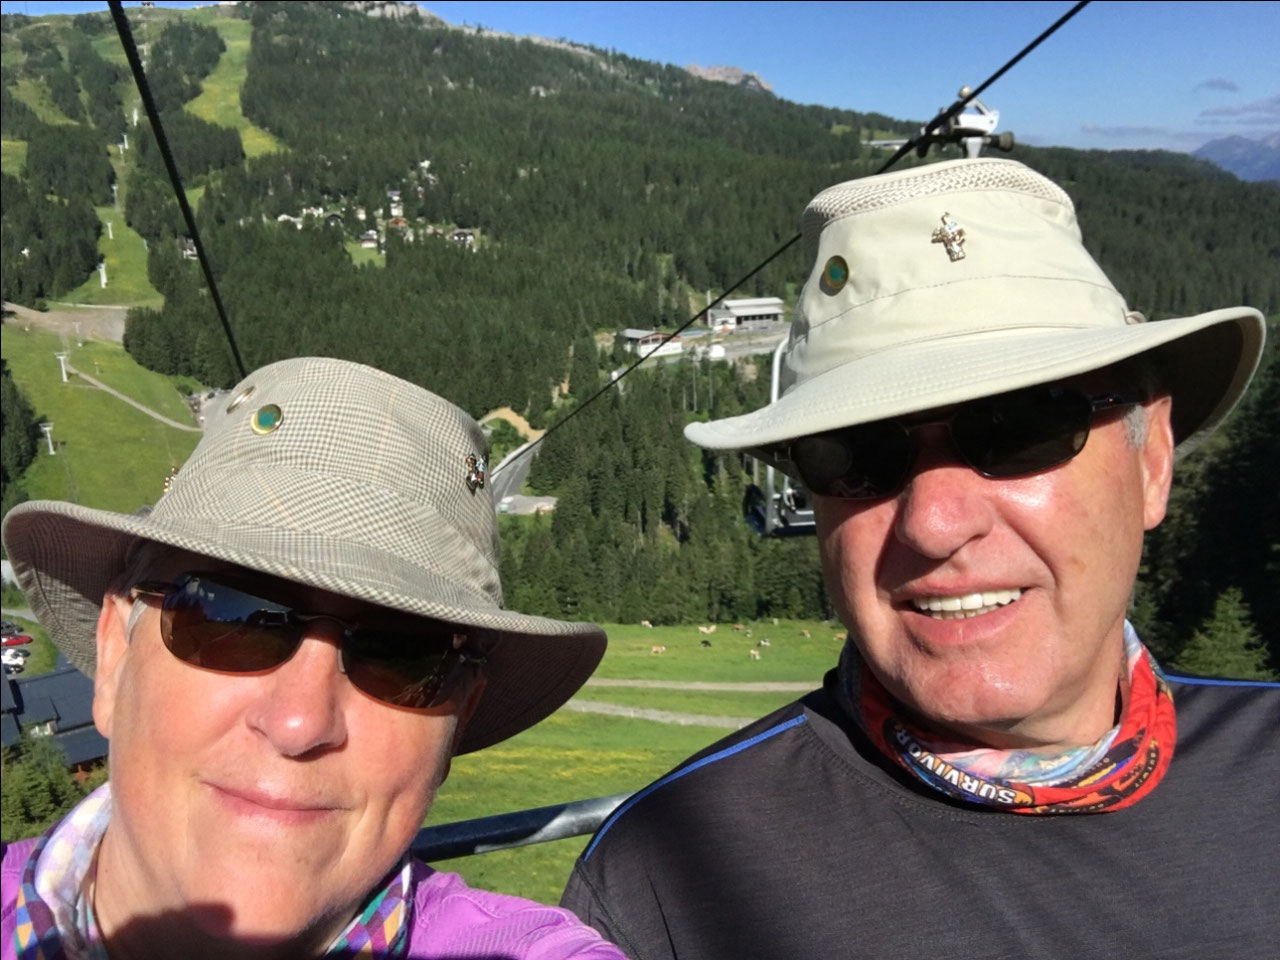 Going up the chairlift and cows in the background